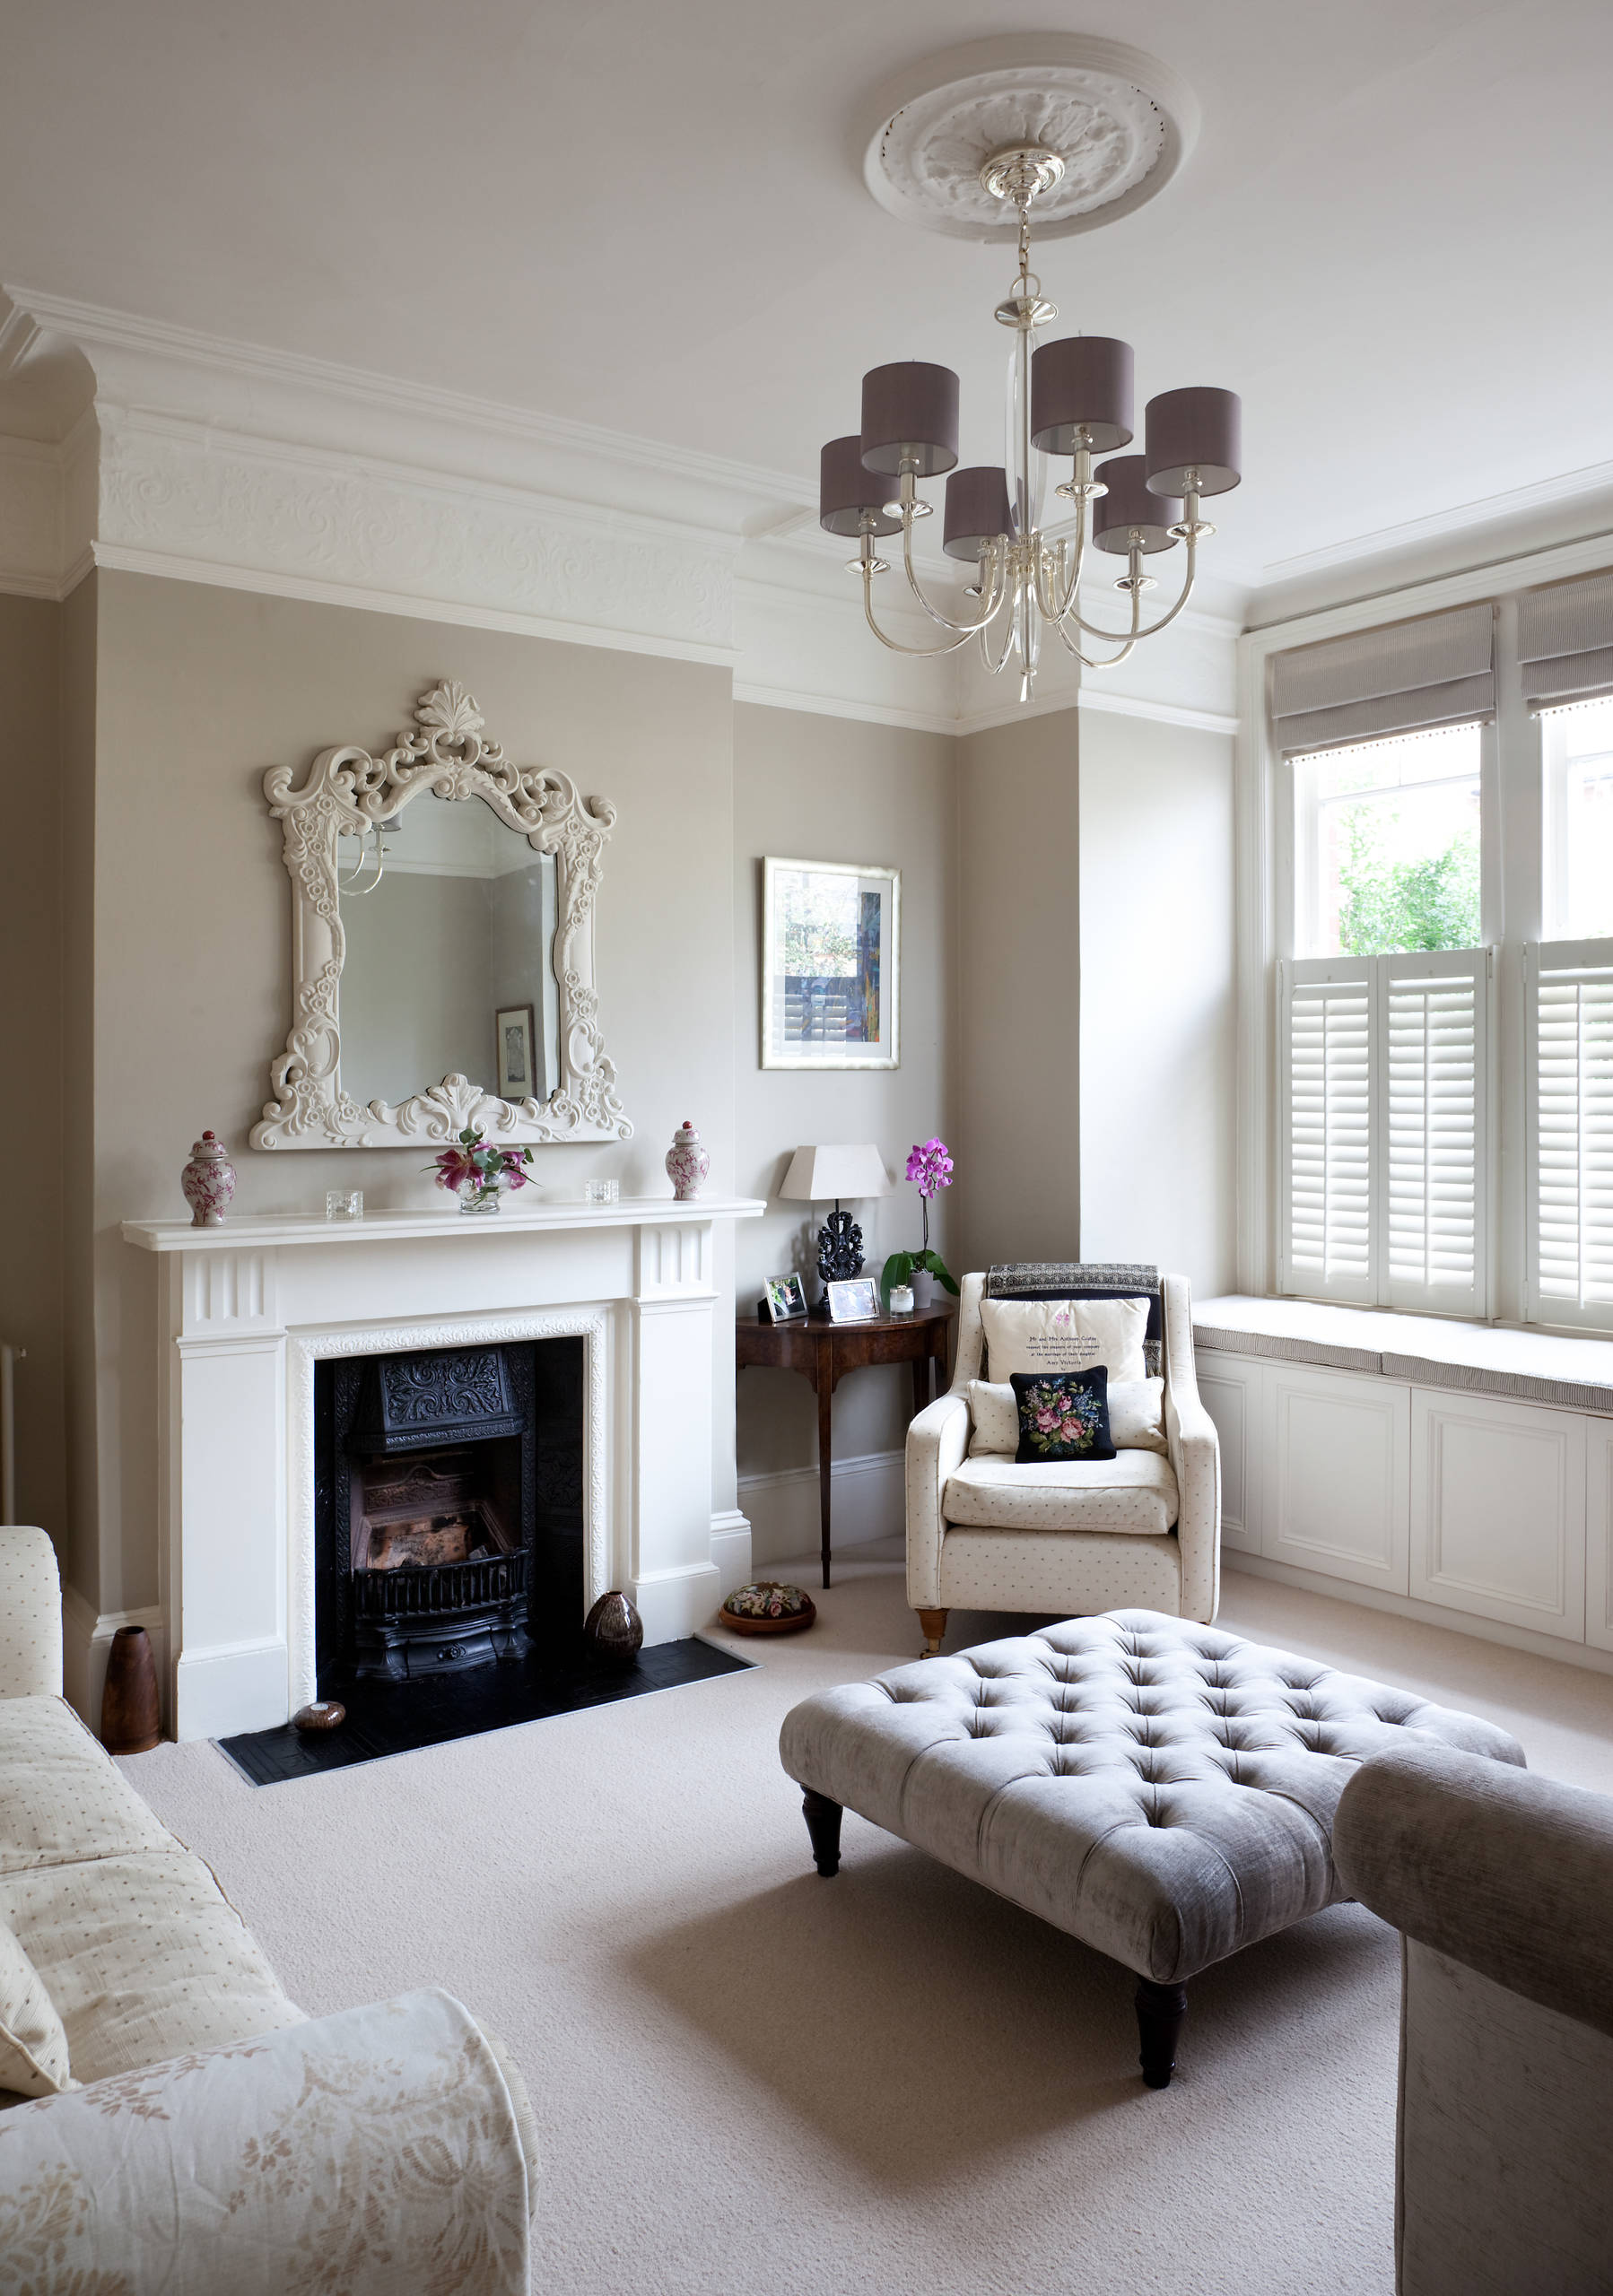 75 Beautiful Victorian Living Room Pictures Ideas March 2021 Houzz